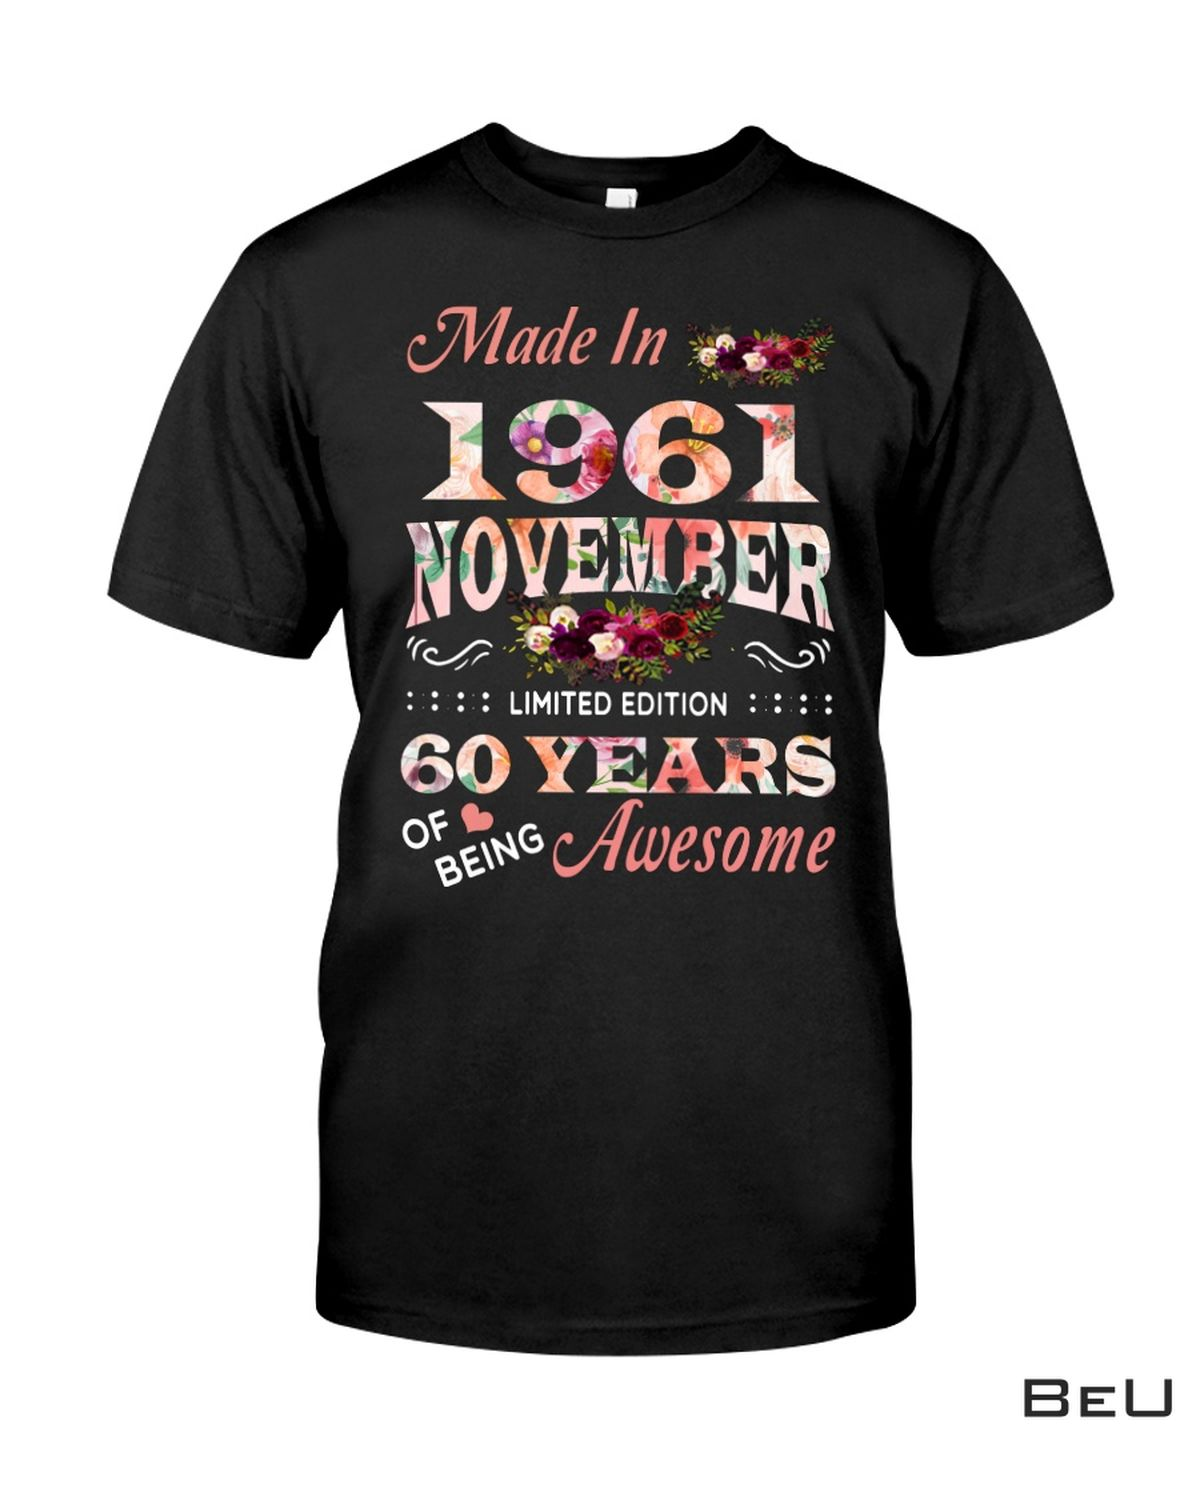 Made In 1961 November Limited Edition Shirt